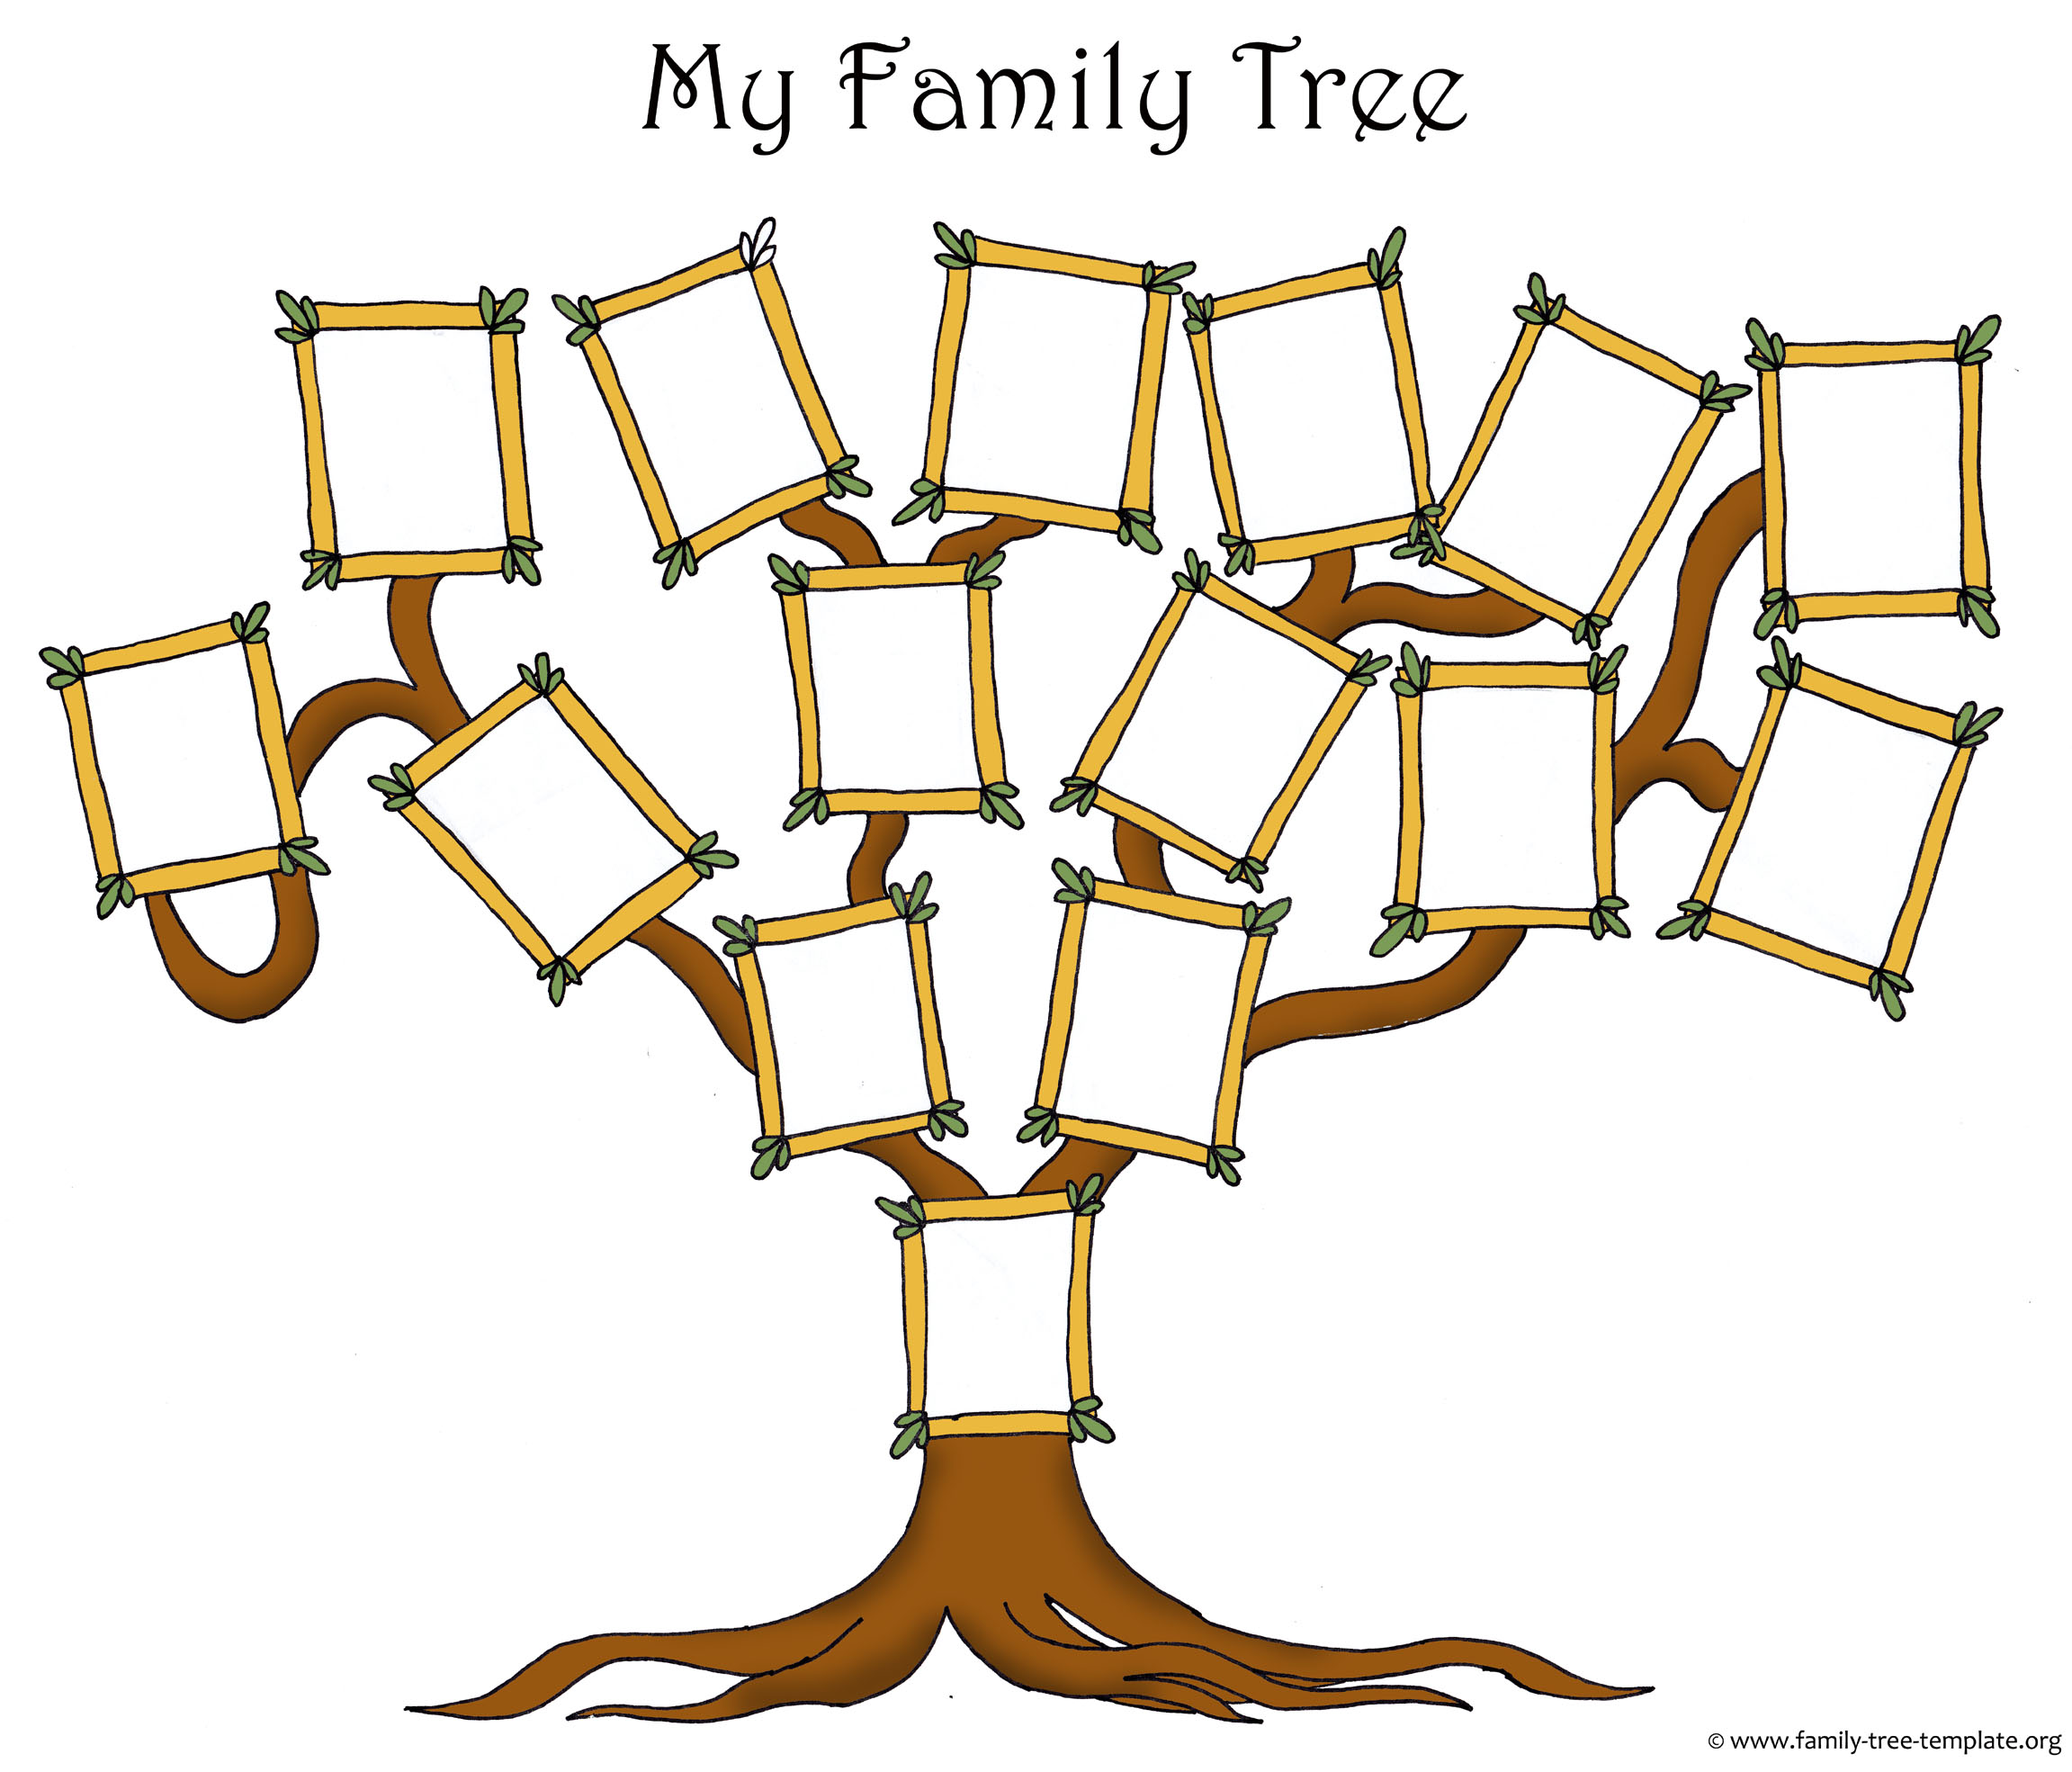 Printable Tree House Plans: Free Family Tree Template Designs For Making Ancestry Charts